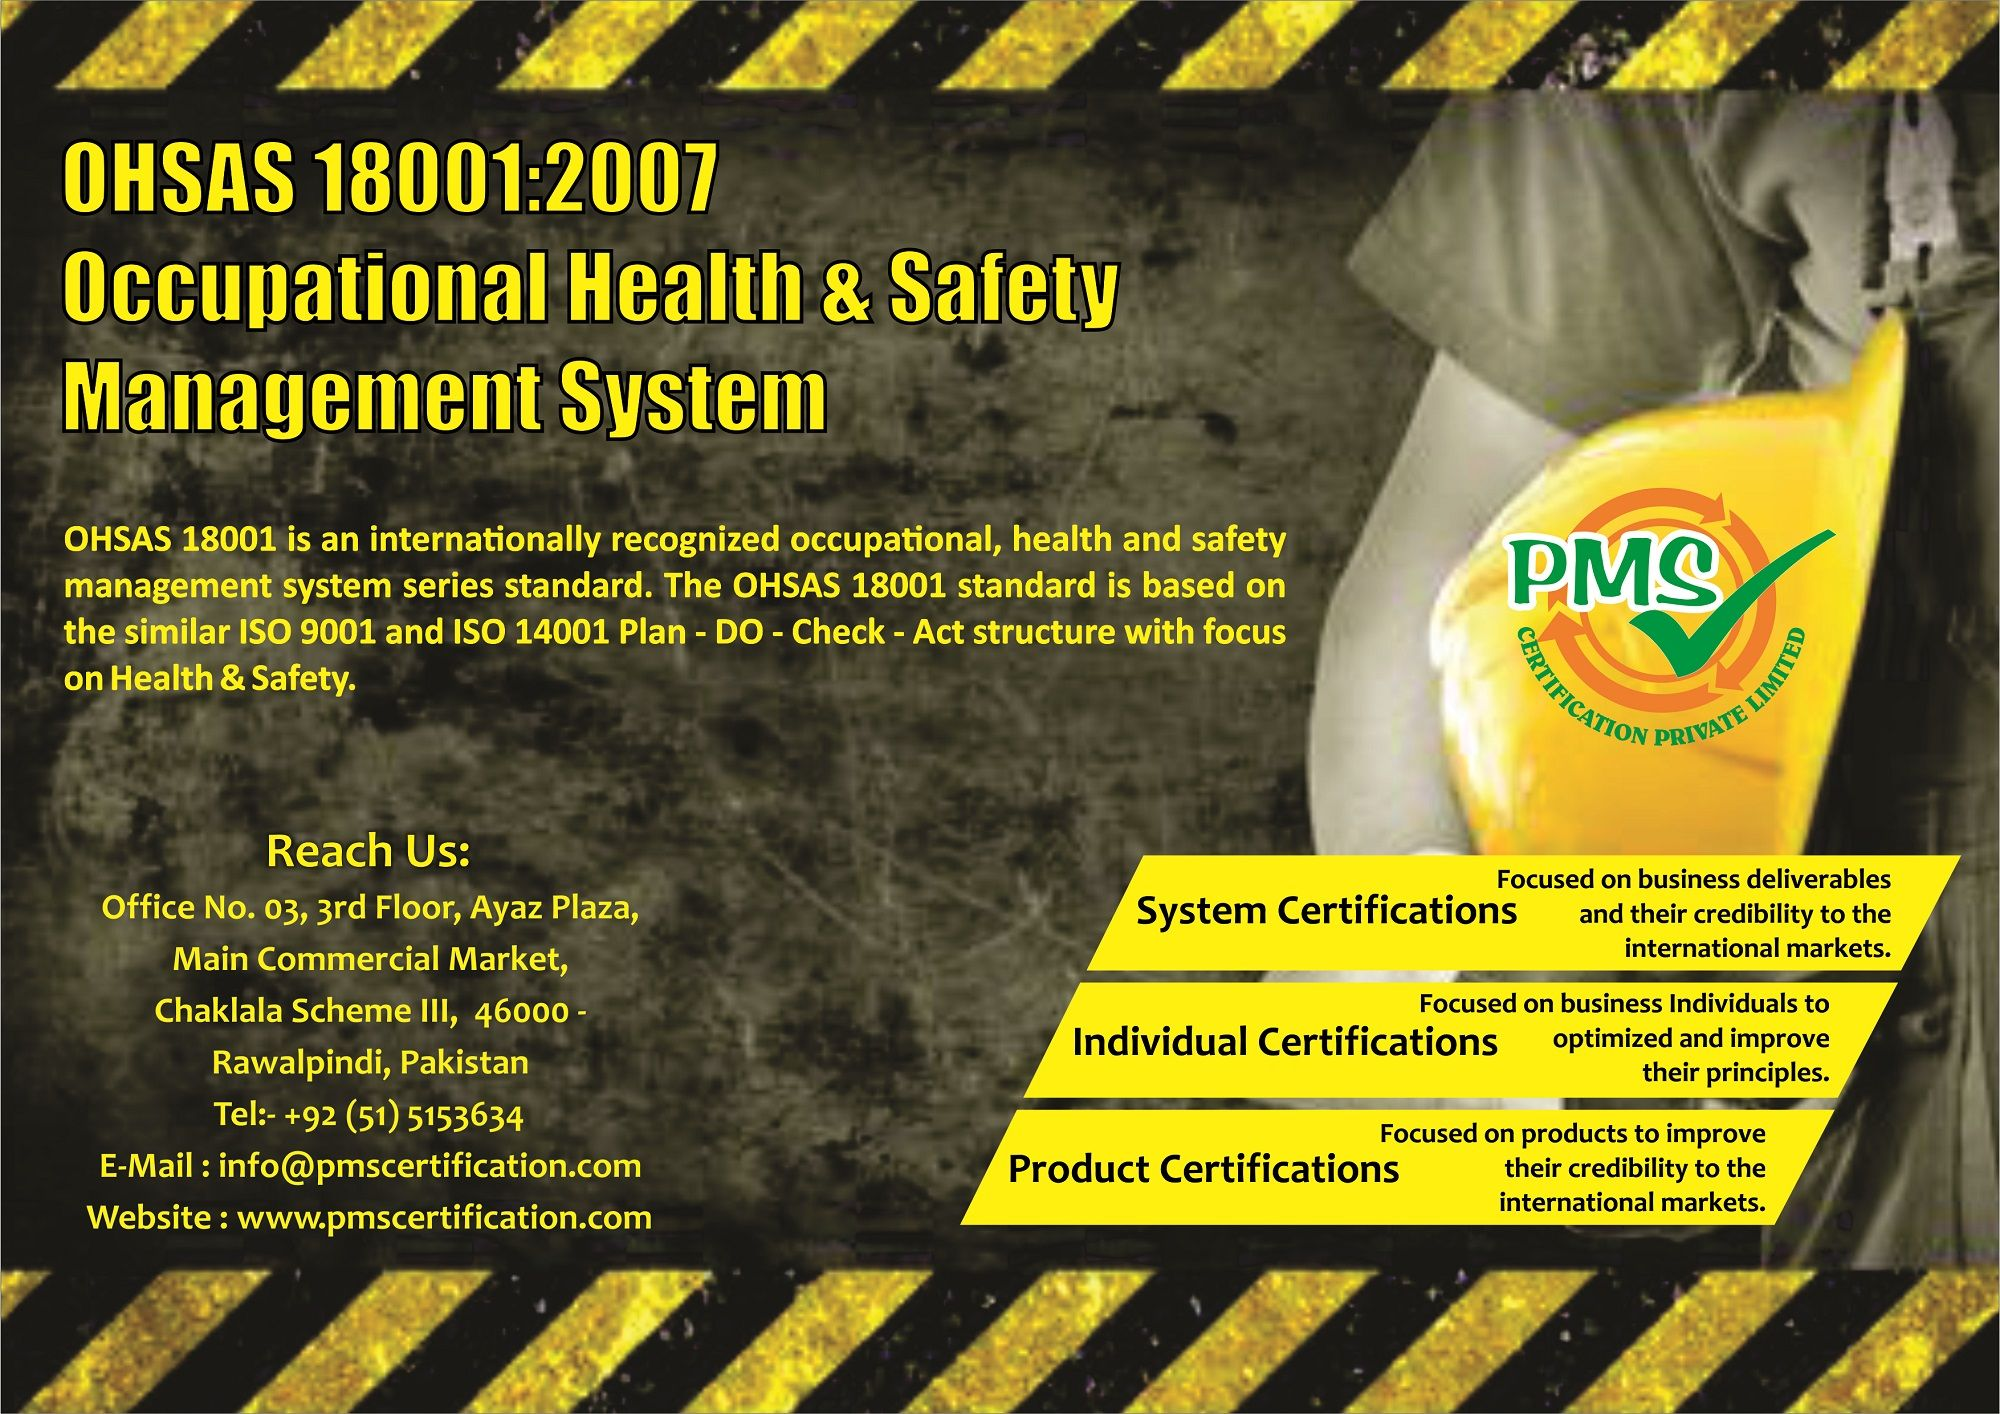 Workplace Safety and Prevention Plan, OSHA Workplace